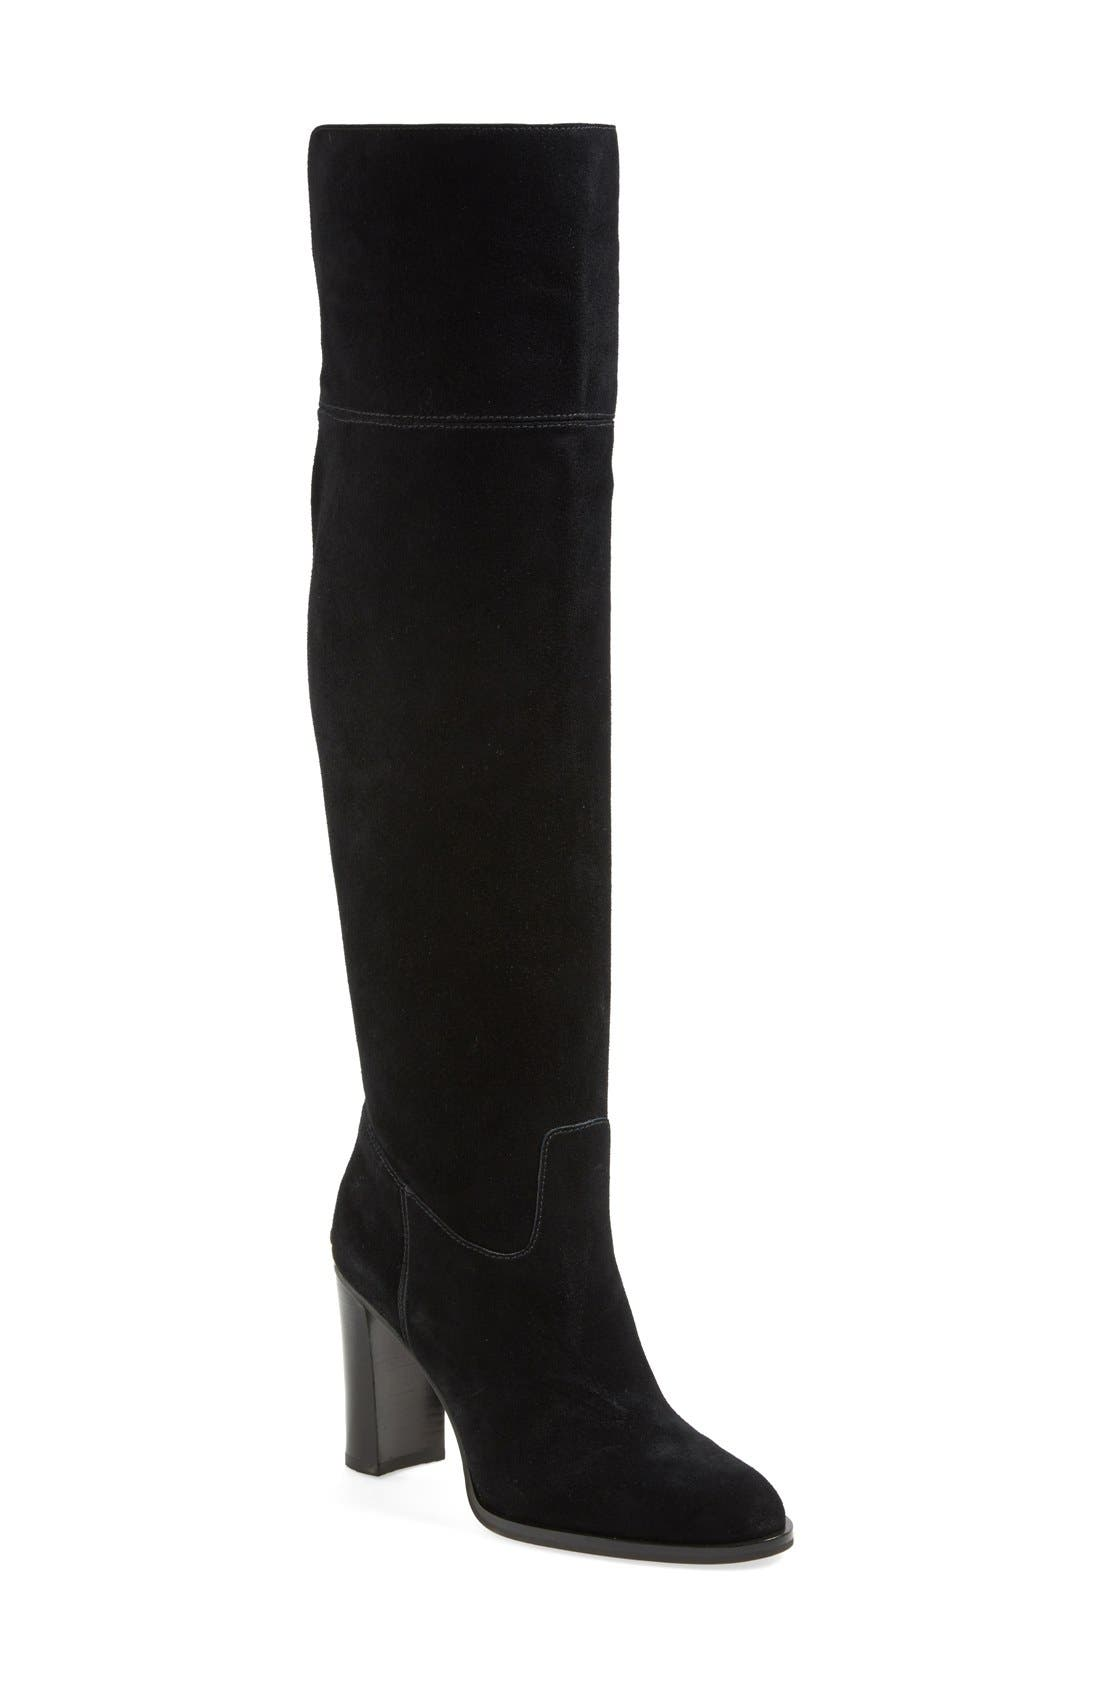 'Regina' Over the Knee Boot, Main, color, 001